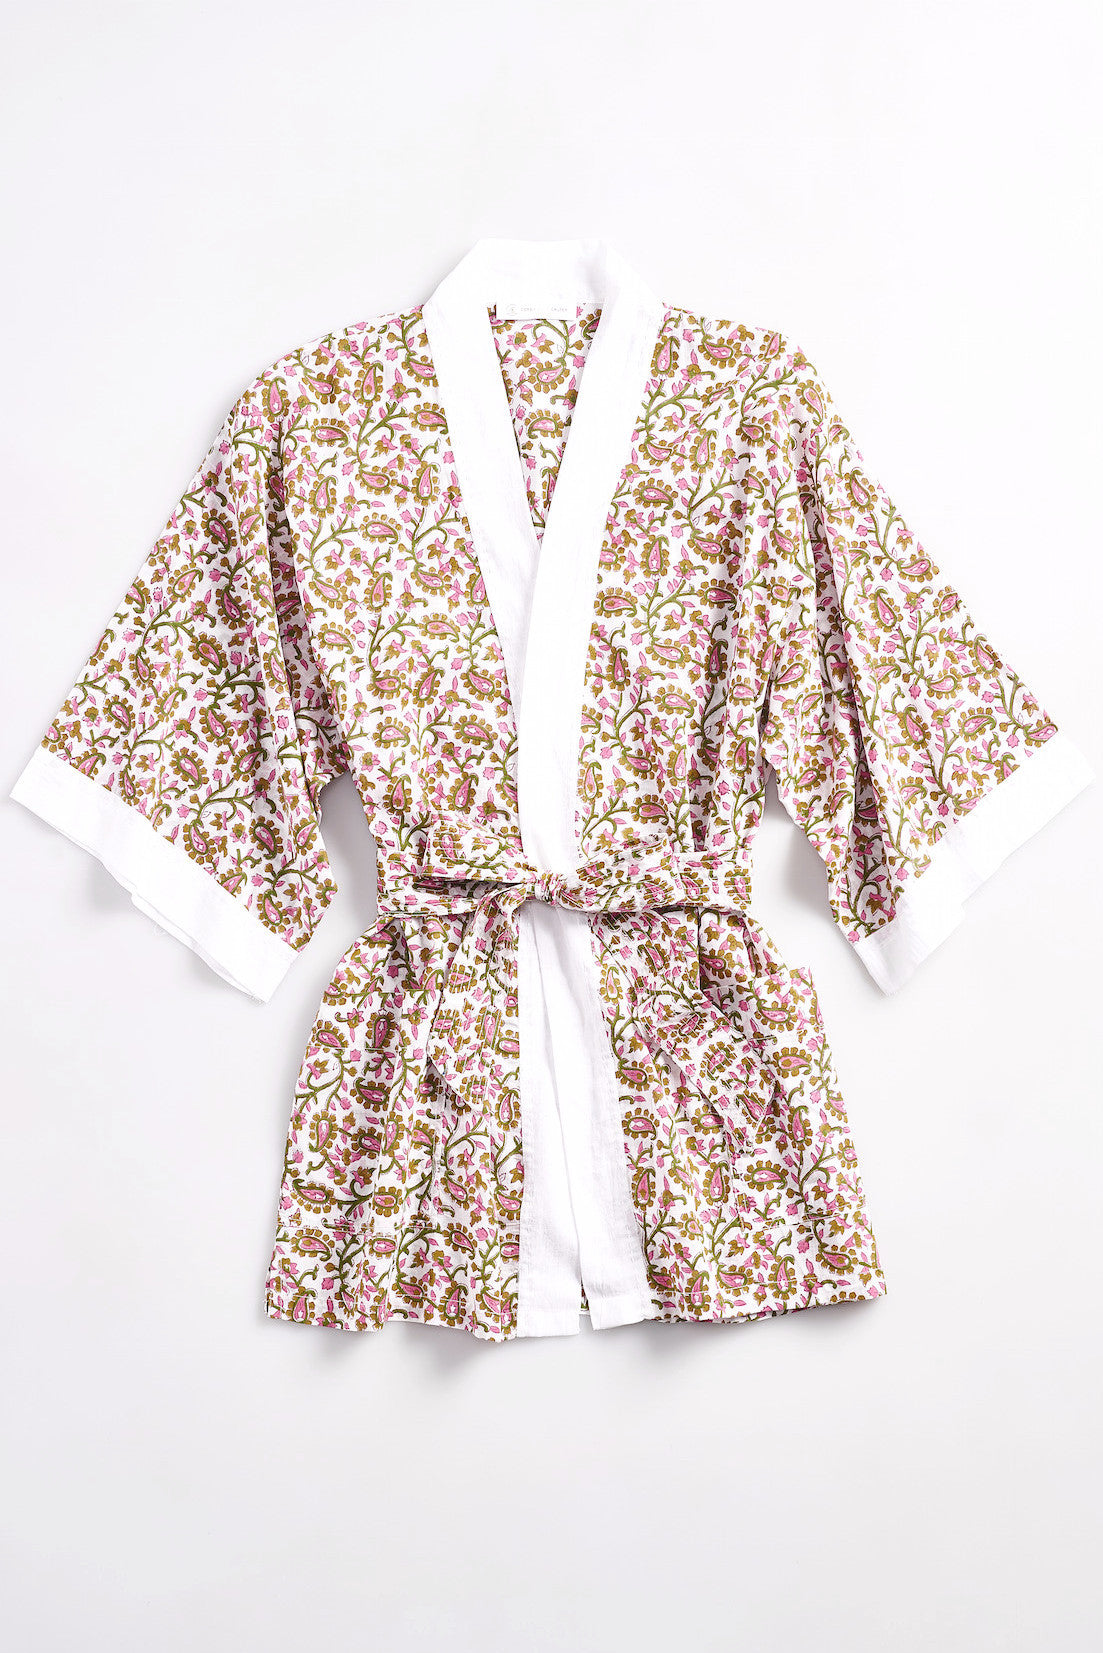 LESLIE Cotton short robe in cotton Block Printed Paisley